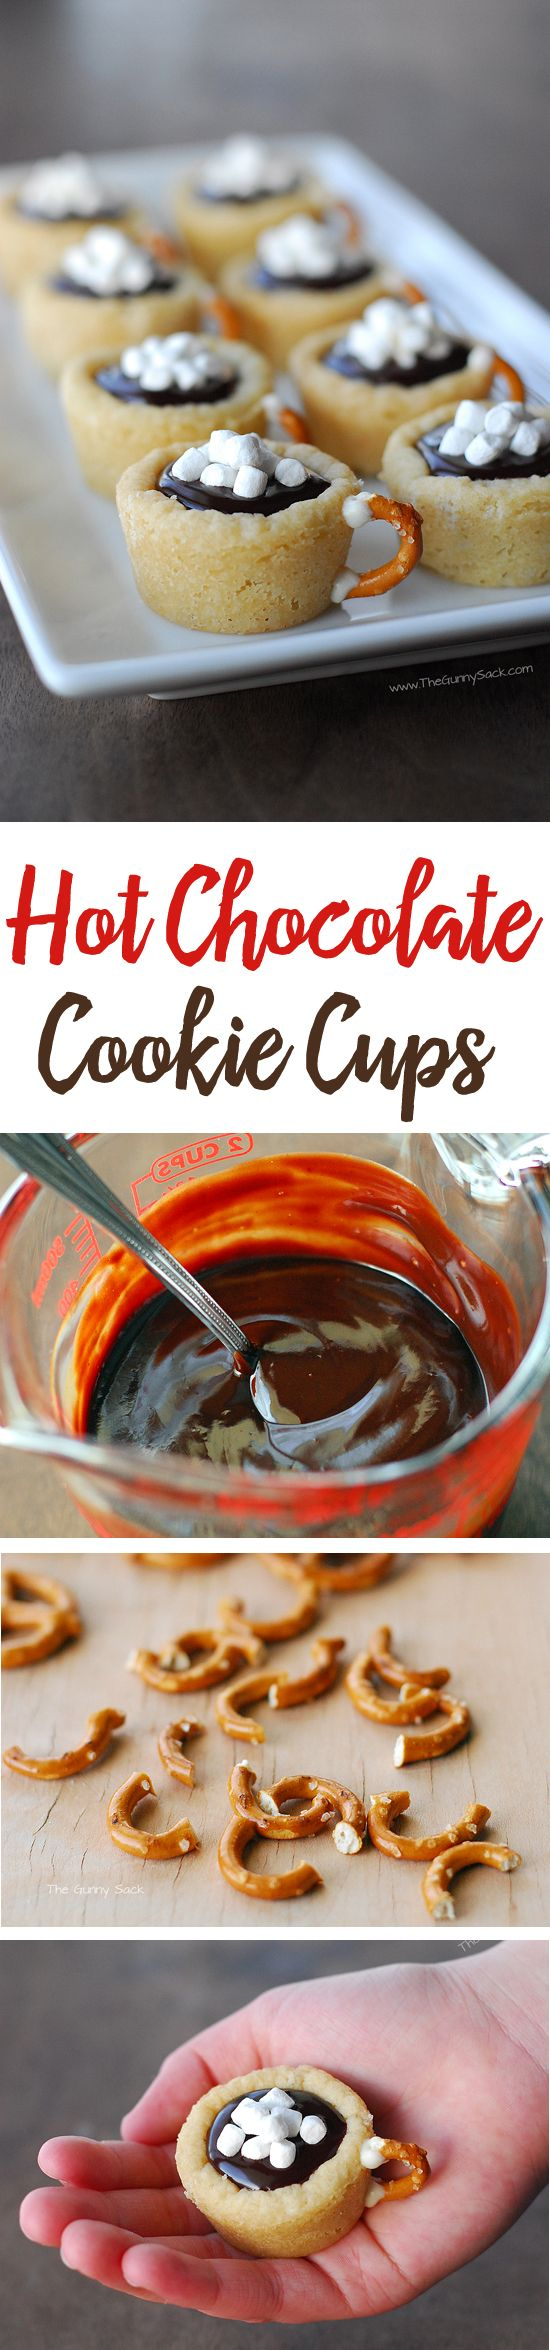 Hot Chocolate Cookie Cups Recipe                                                                                                                                                                                 More